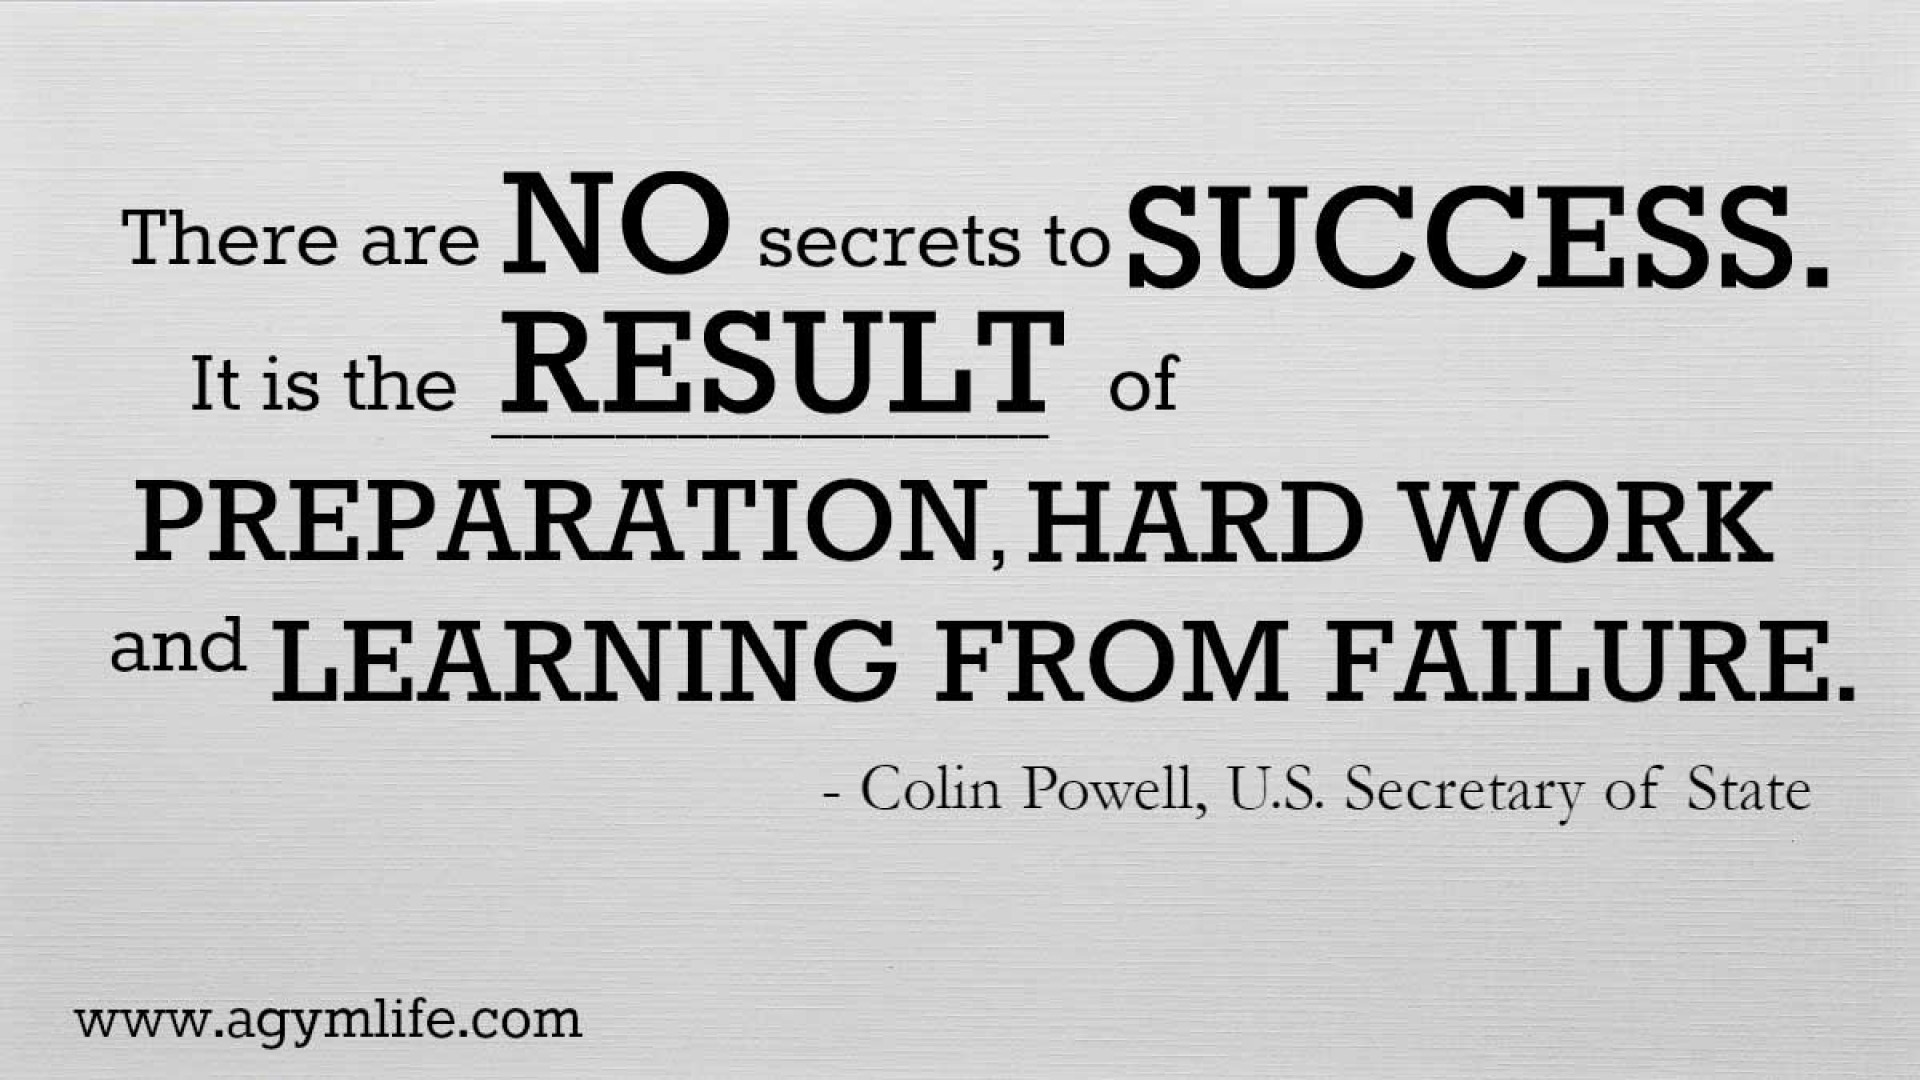 019 Colin Stuckert Powell Quote Agymlife Com Essay Example Success In Fantastic Life Successful Conclusion Achieving 1920